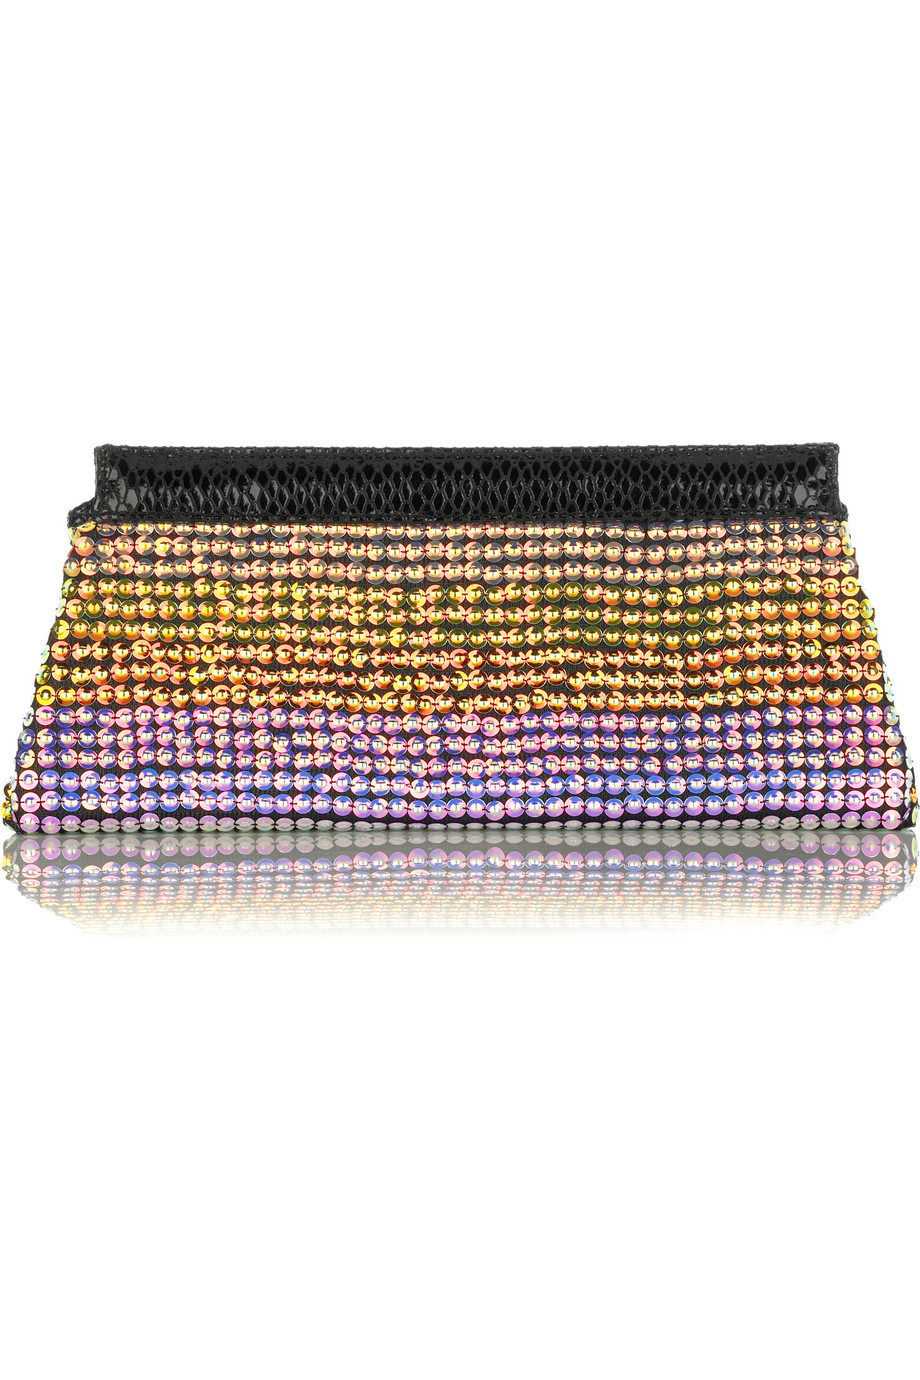 Matthew Williamson Atomic structured clutch  | NET-A-PORTER.COM from net-a-porter.com